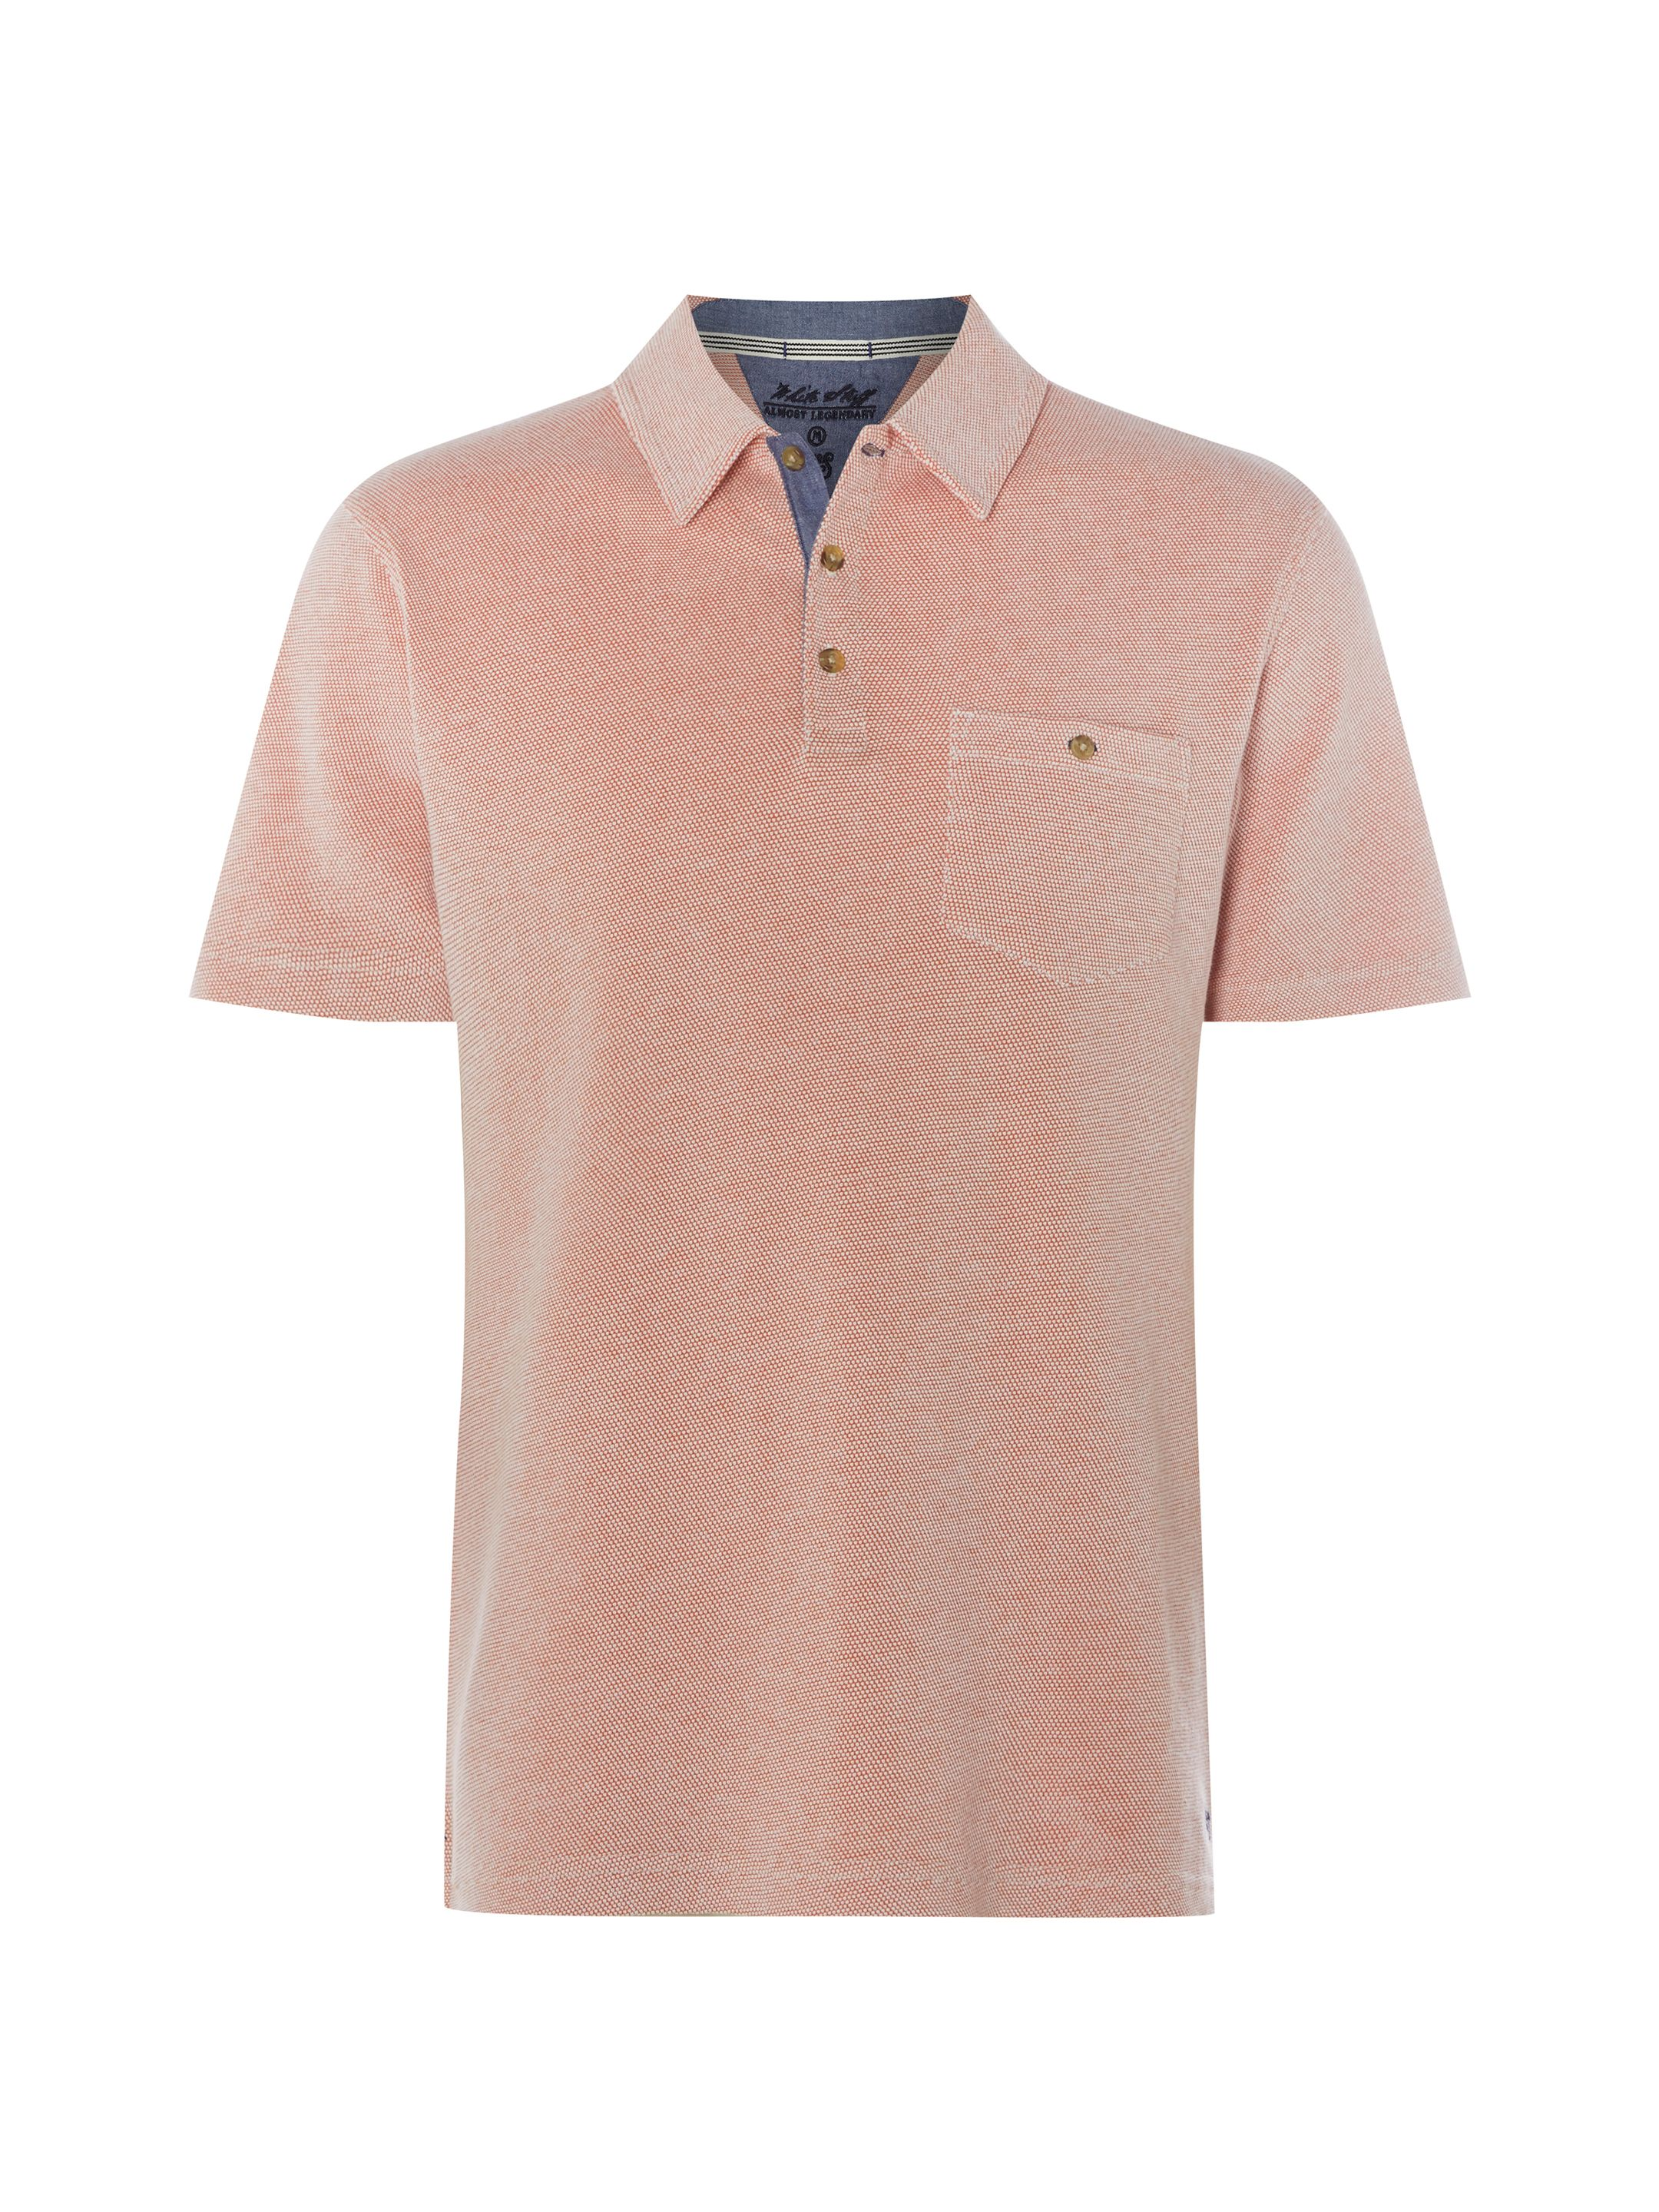 Men's White Stuff Karkalla Polo, Orange